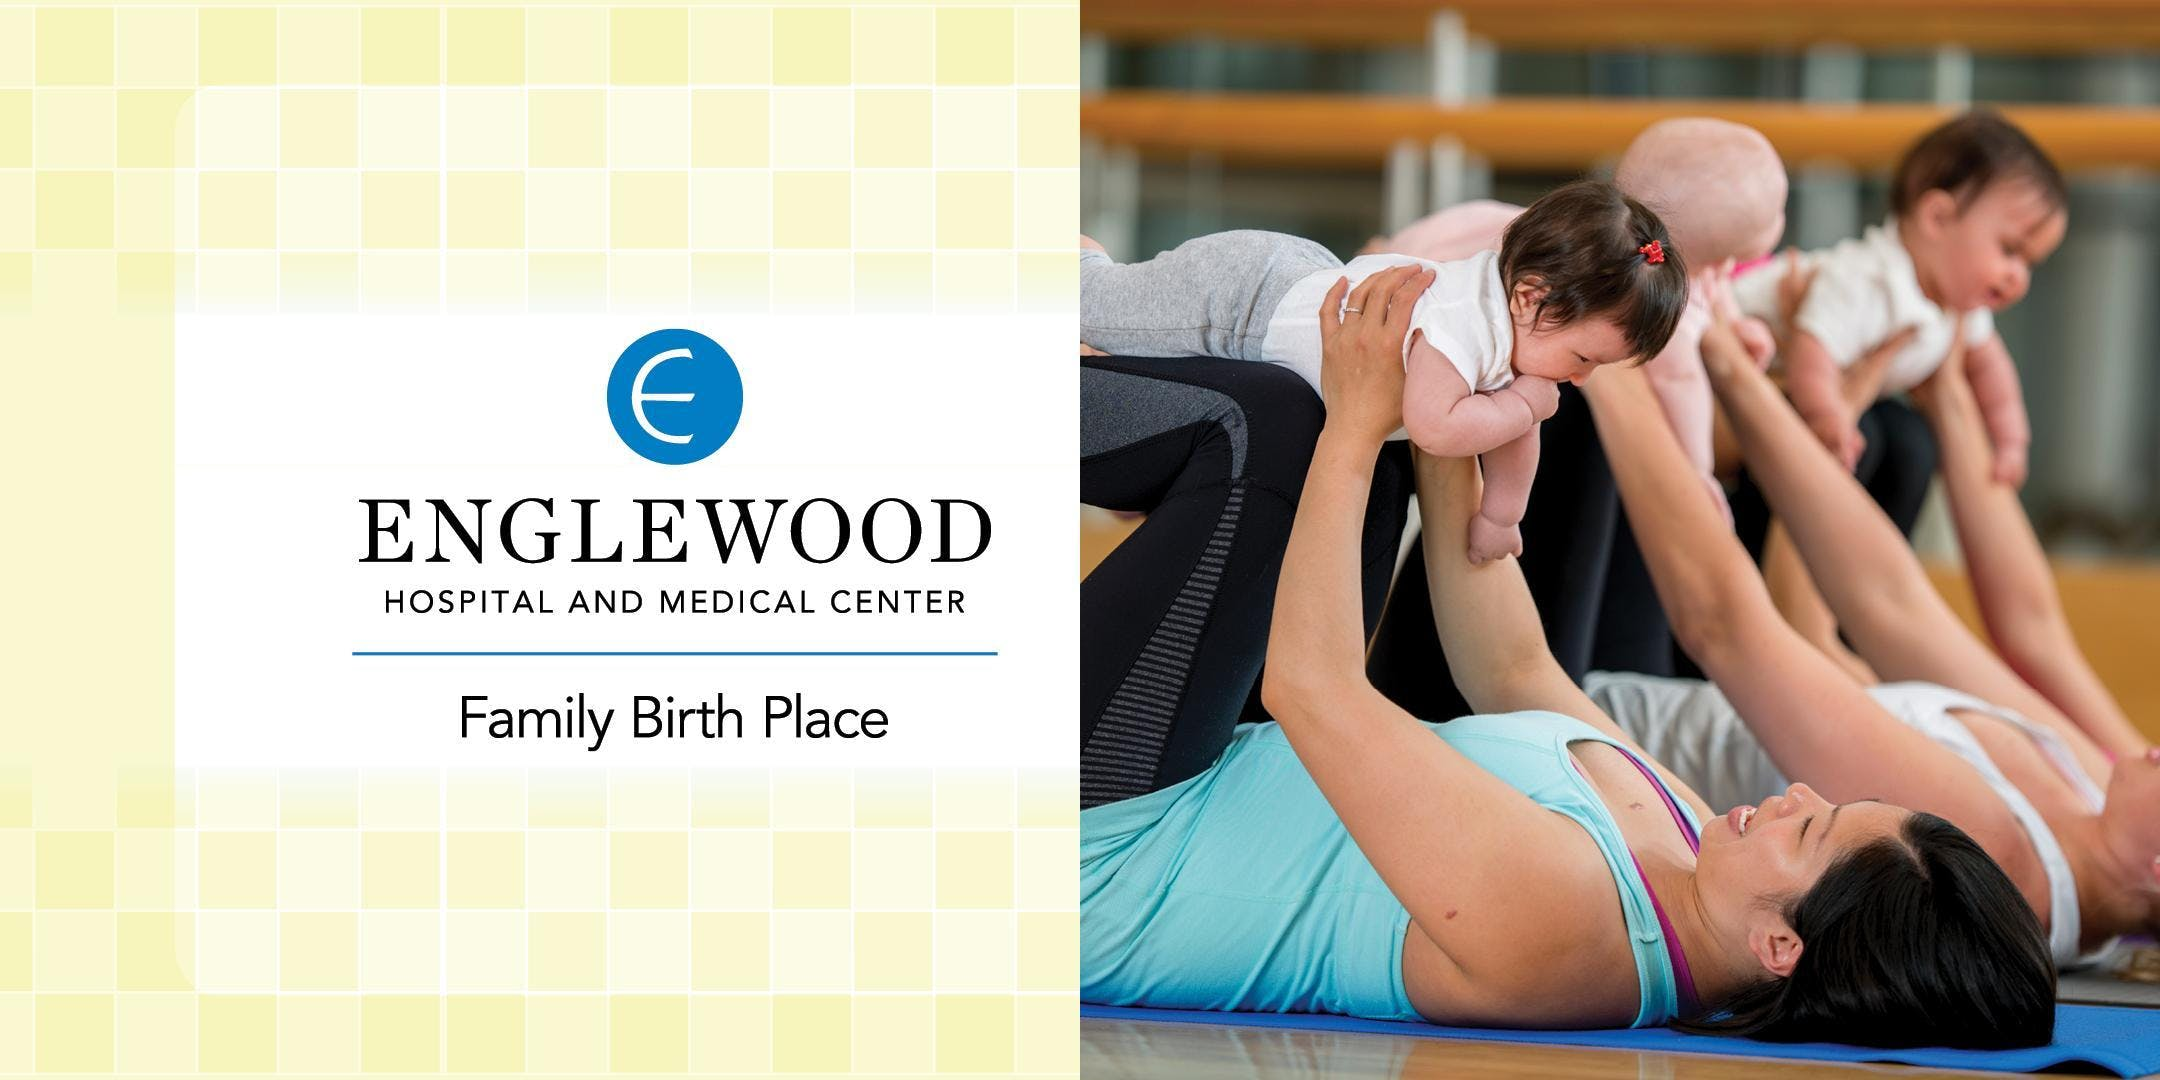 More info: Mommy and Me Postnatal Yoga Series (JULY 26-AUGUST 30)